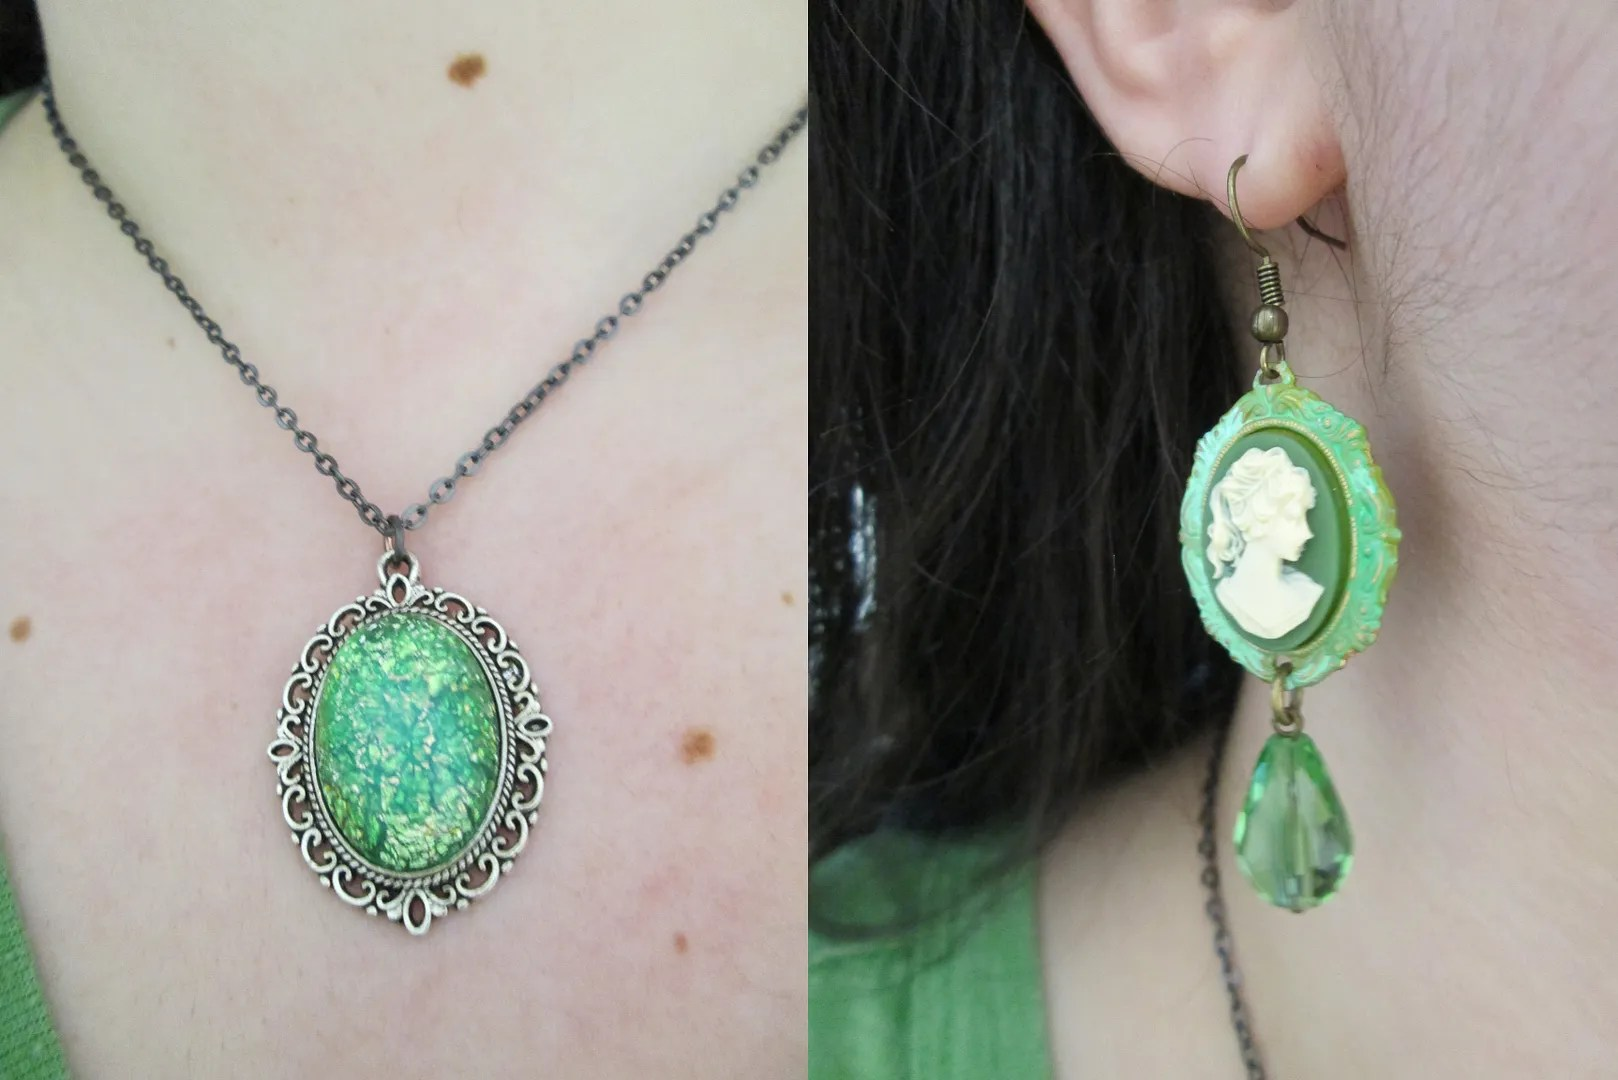 green gem necklace and cameo earring